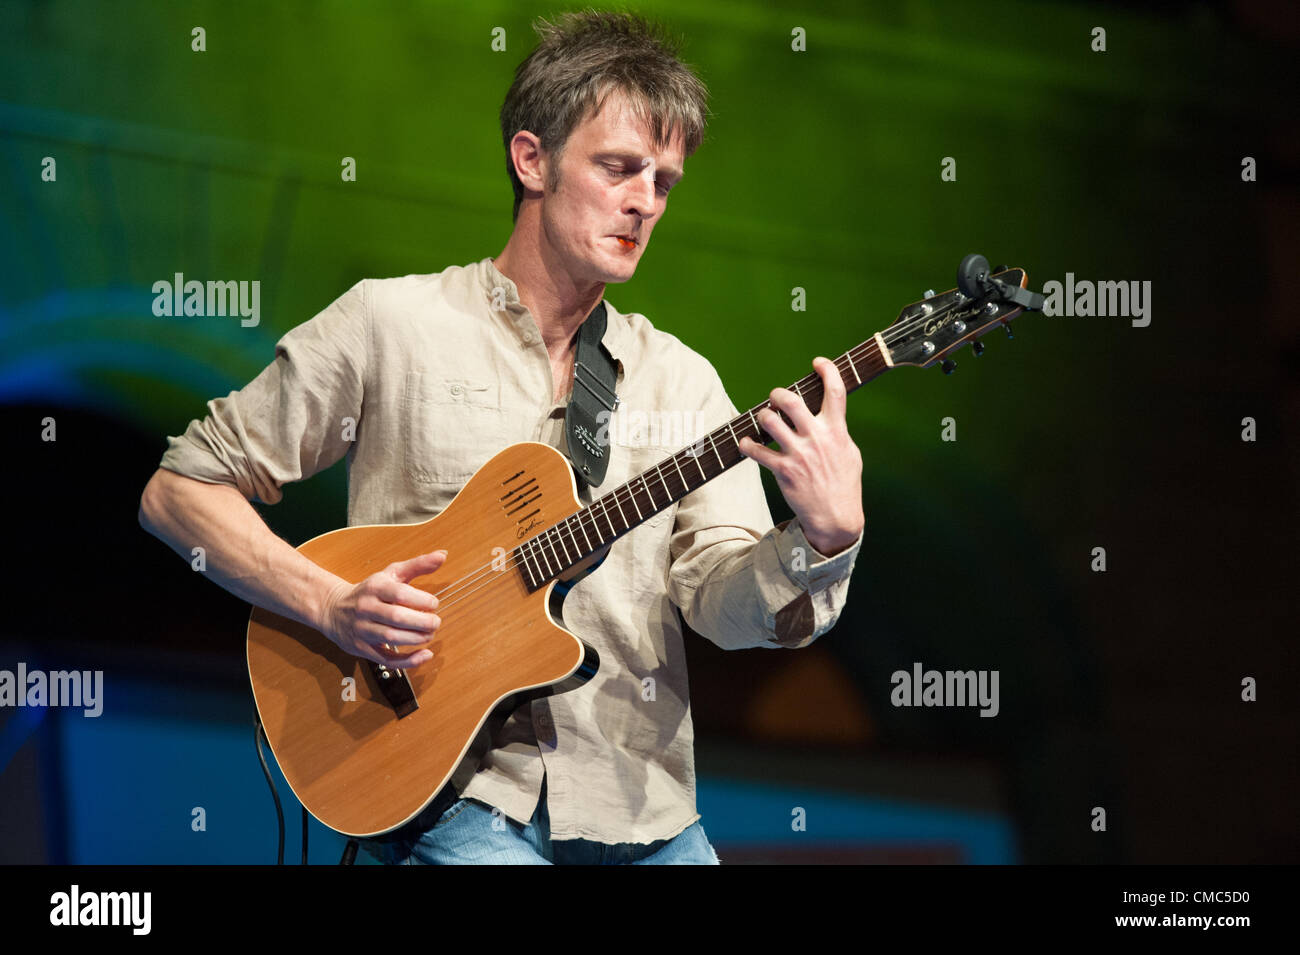 July 14, 2012 – Las Palmas, Canary Islands, Spain – Guitarist Jörg Pfeil, from Germany, onstage with Munit - Stock Image